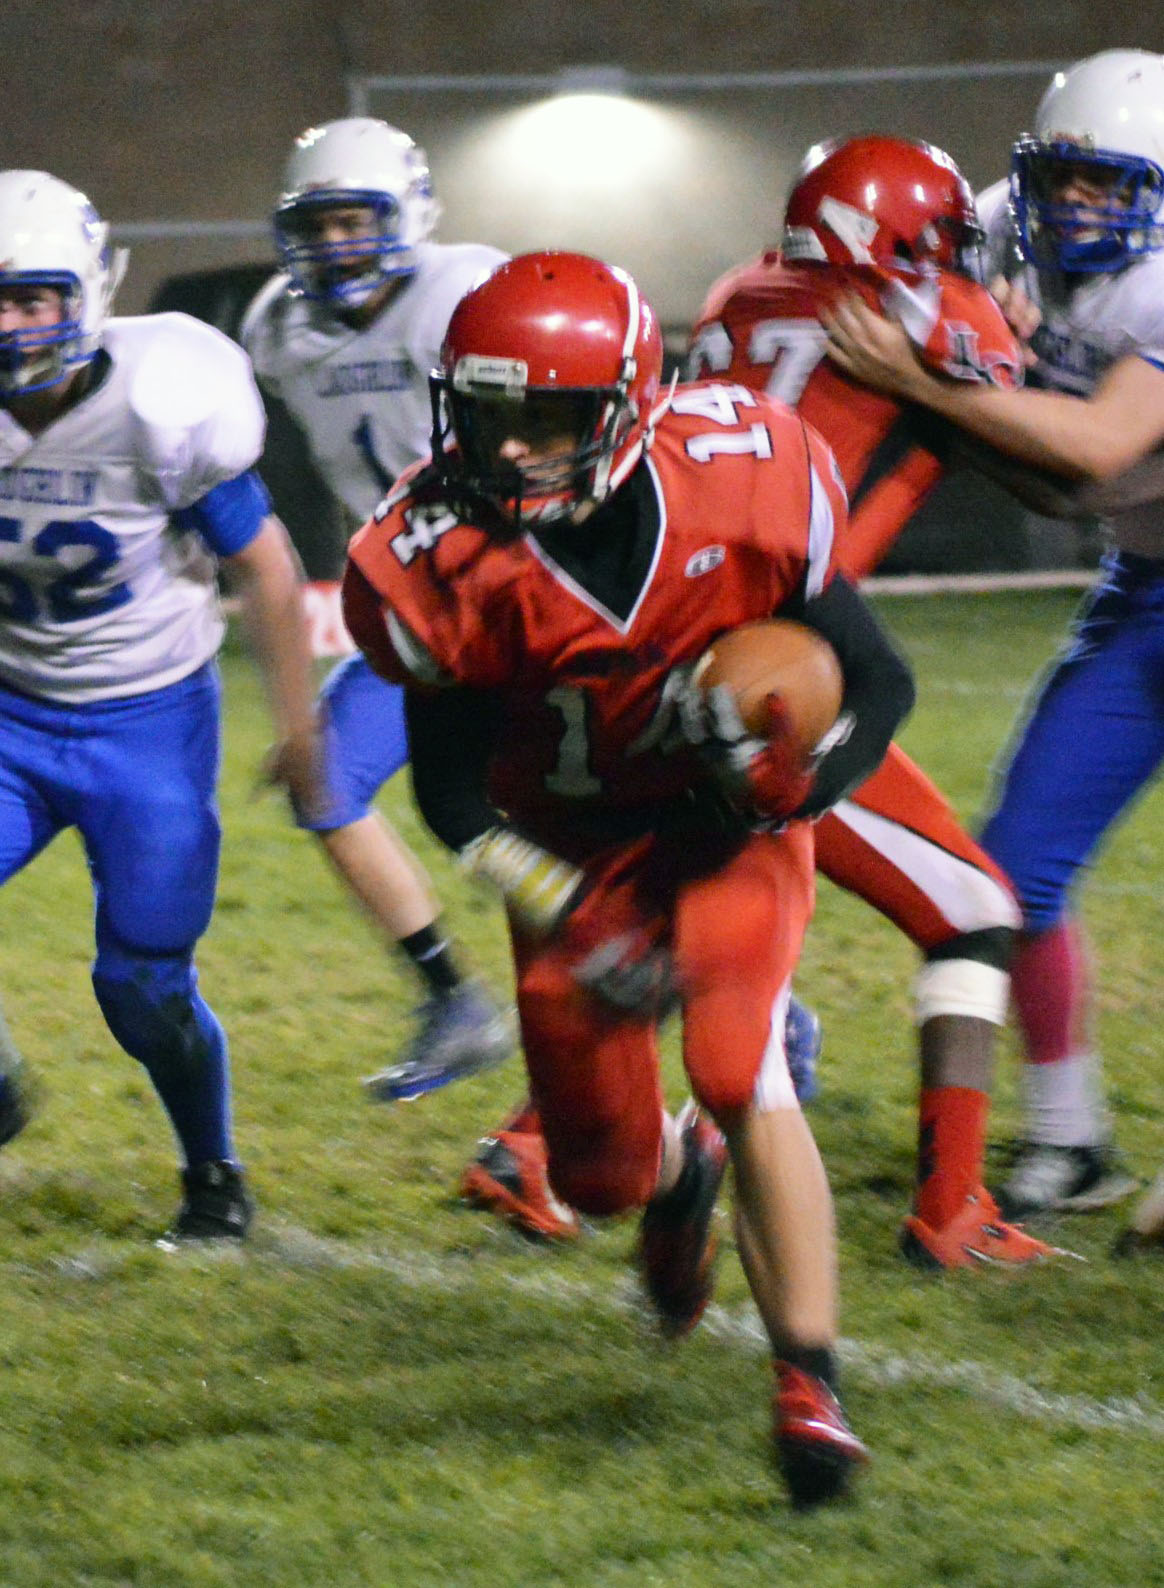 Lincoln impresses in homecoming rout Laughlin